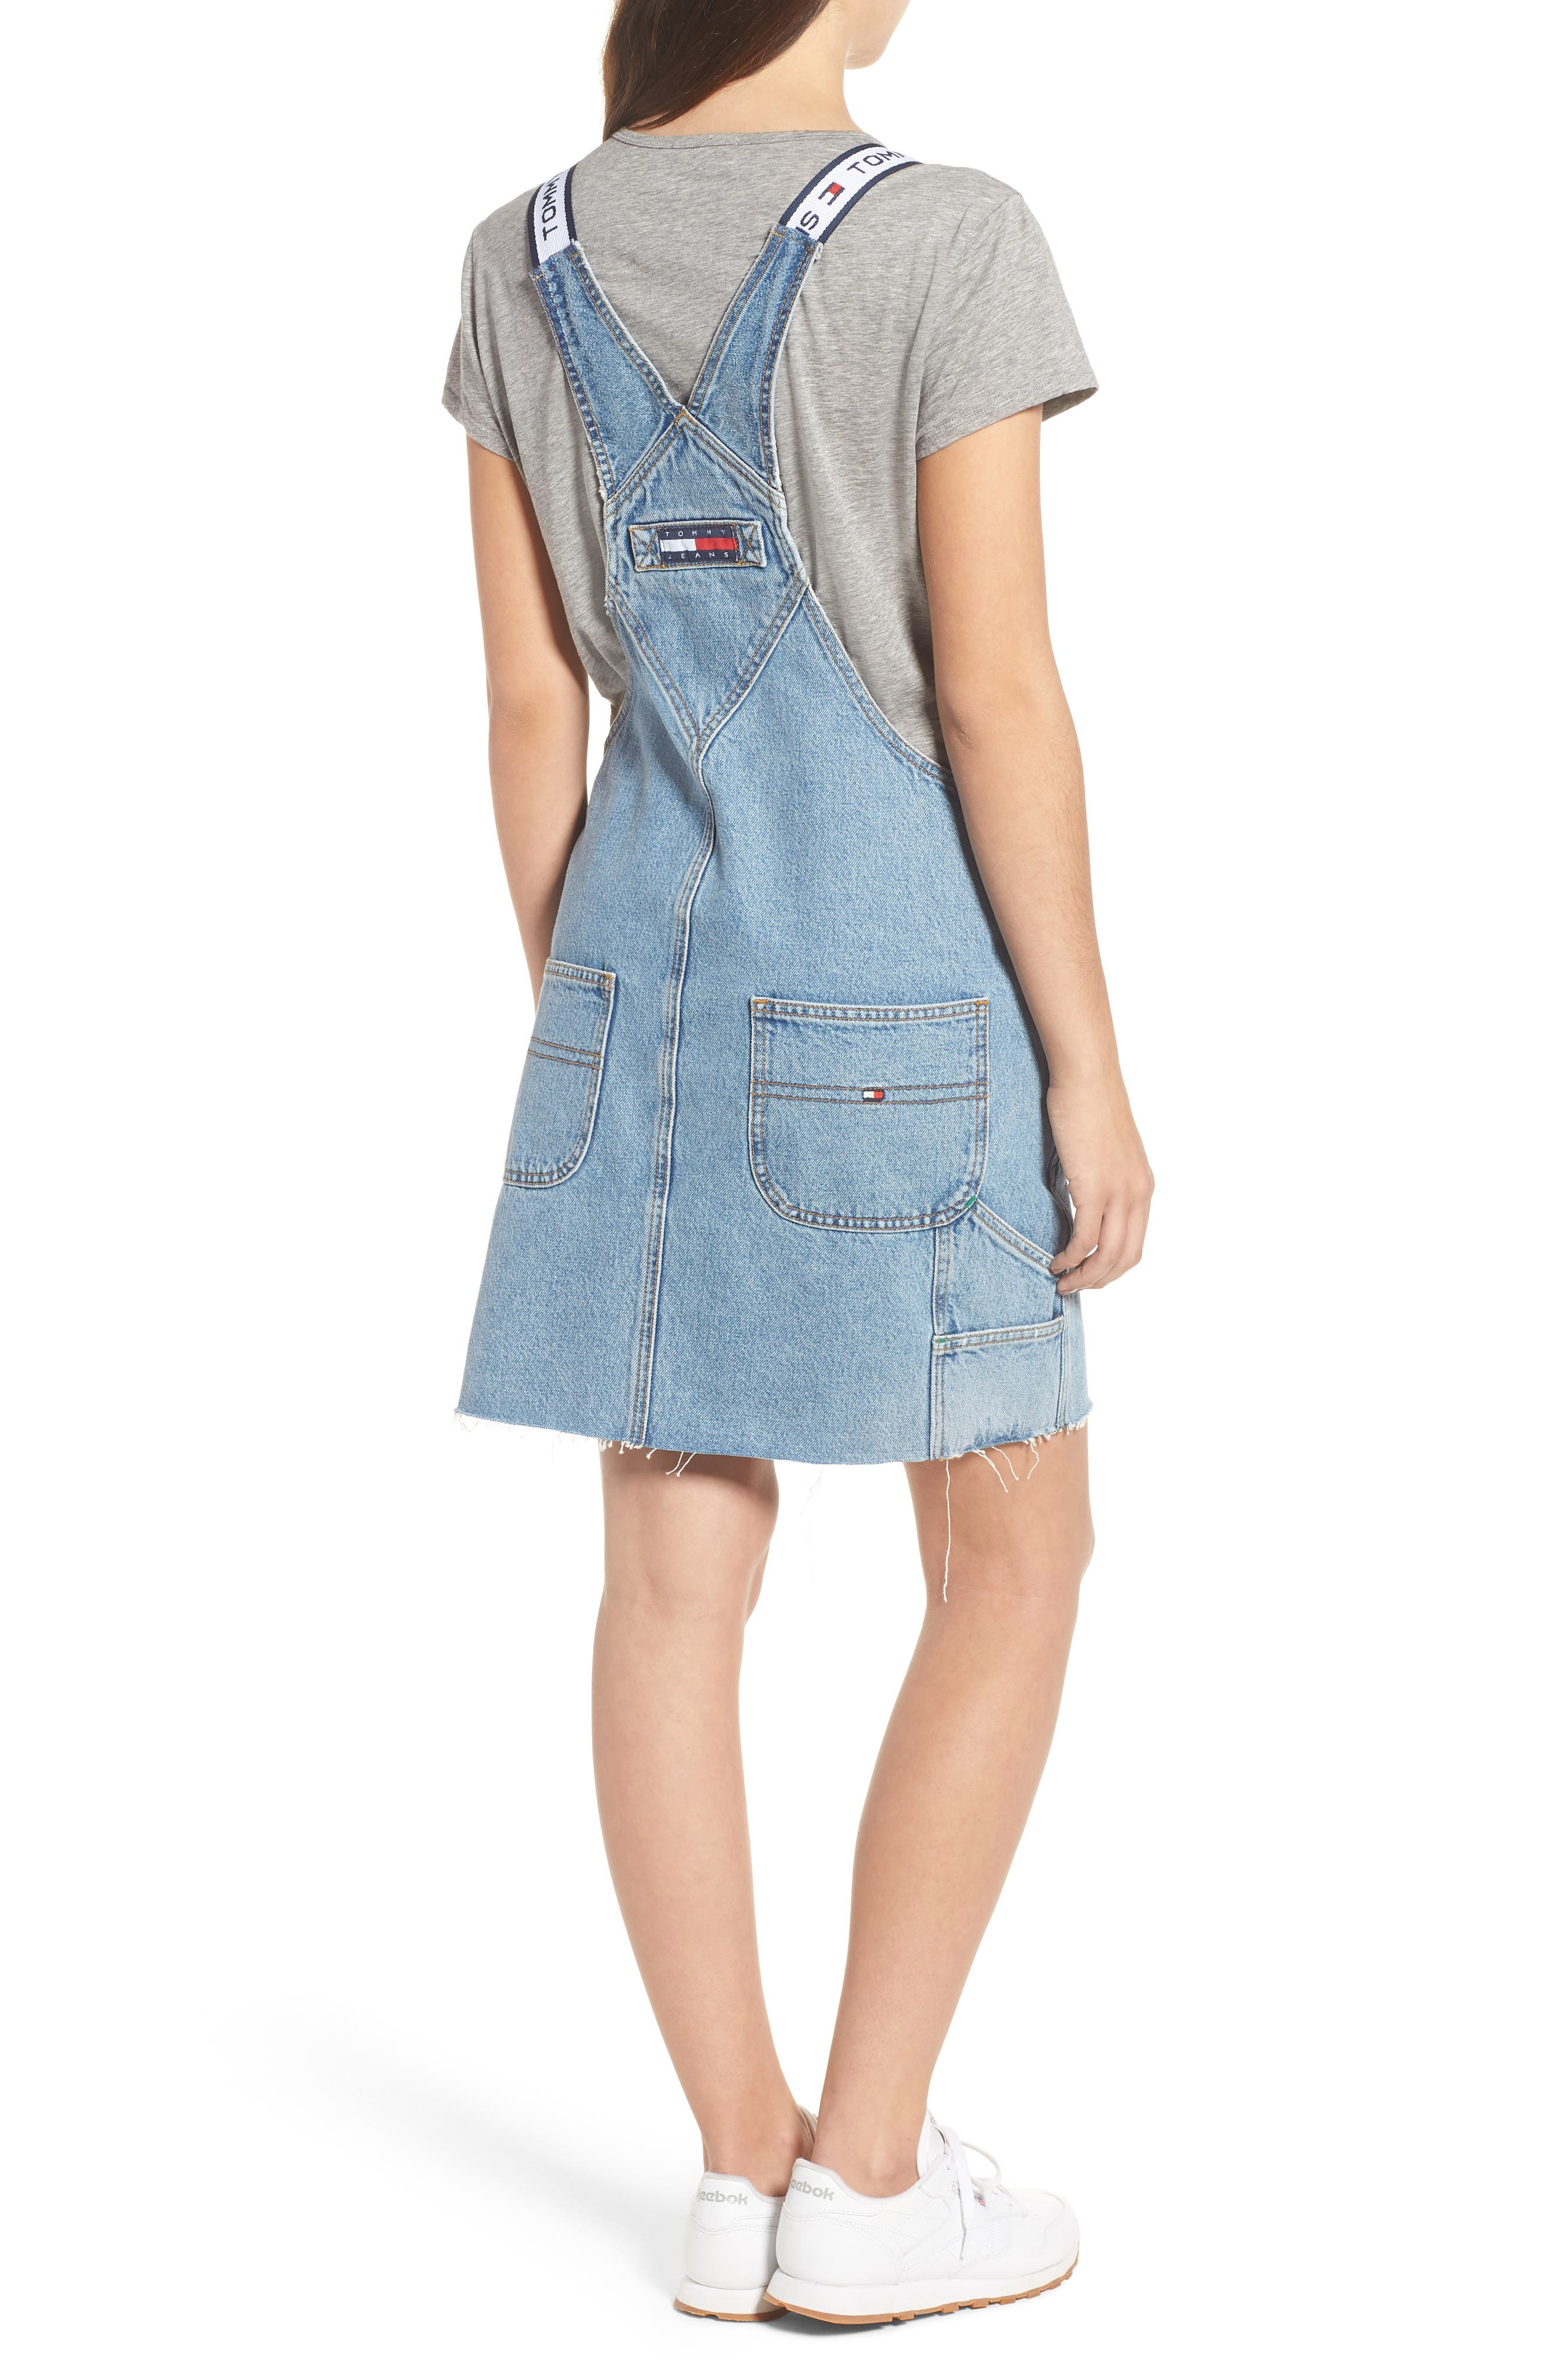 Dunagree Dress,                             Alternate thumbnail 2, color,                             Light Denim Blue